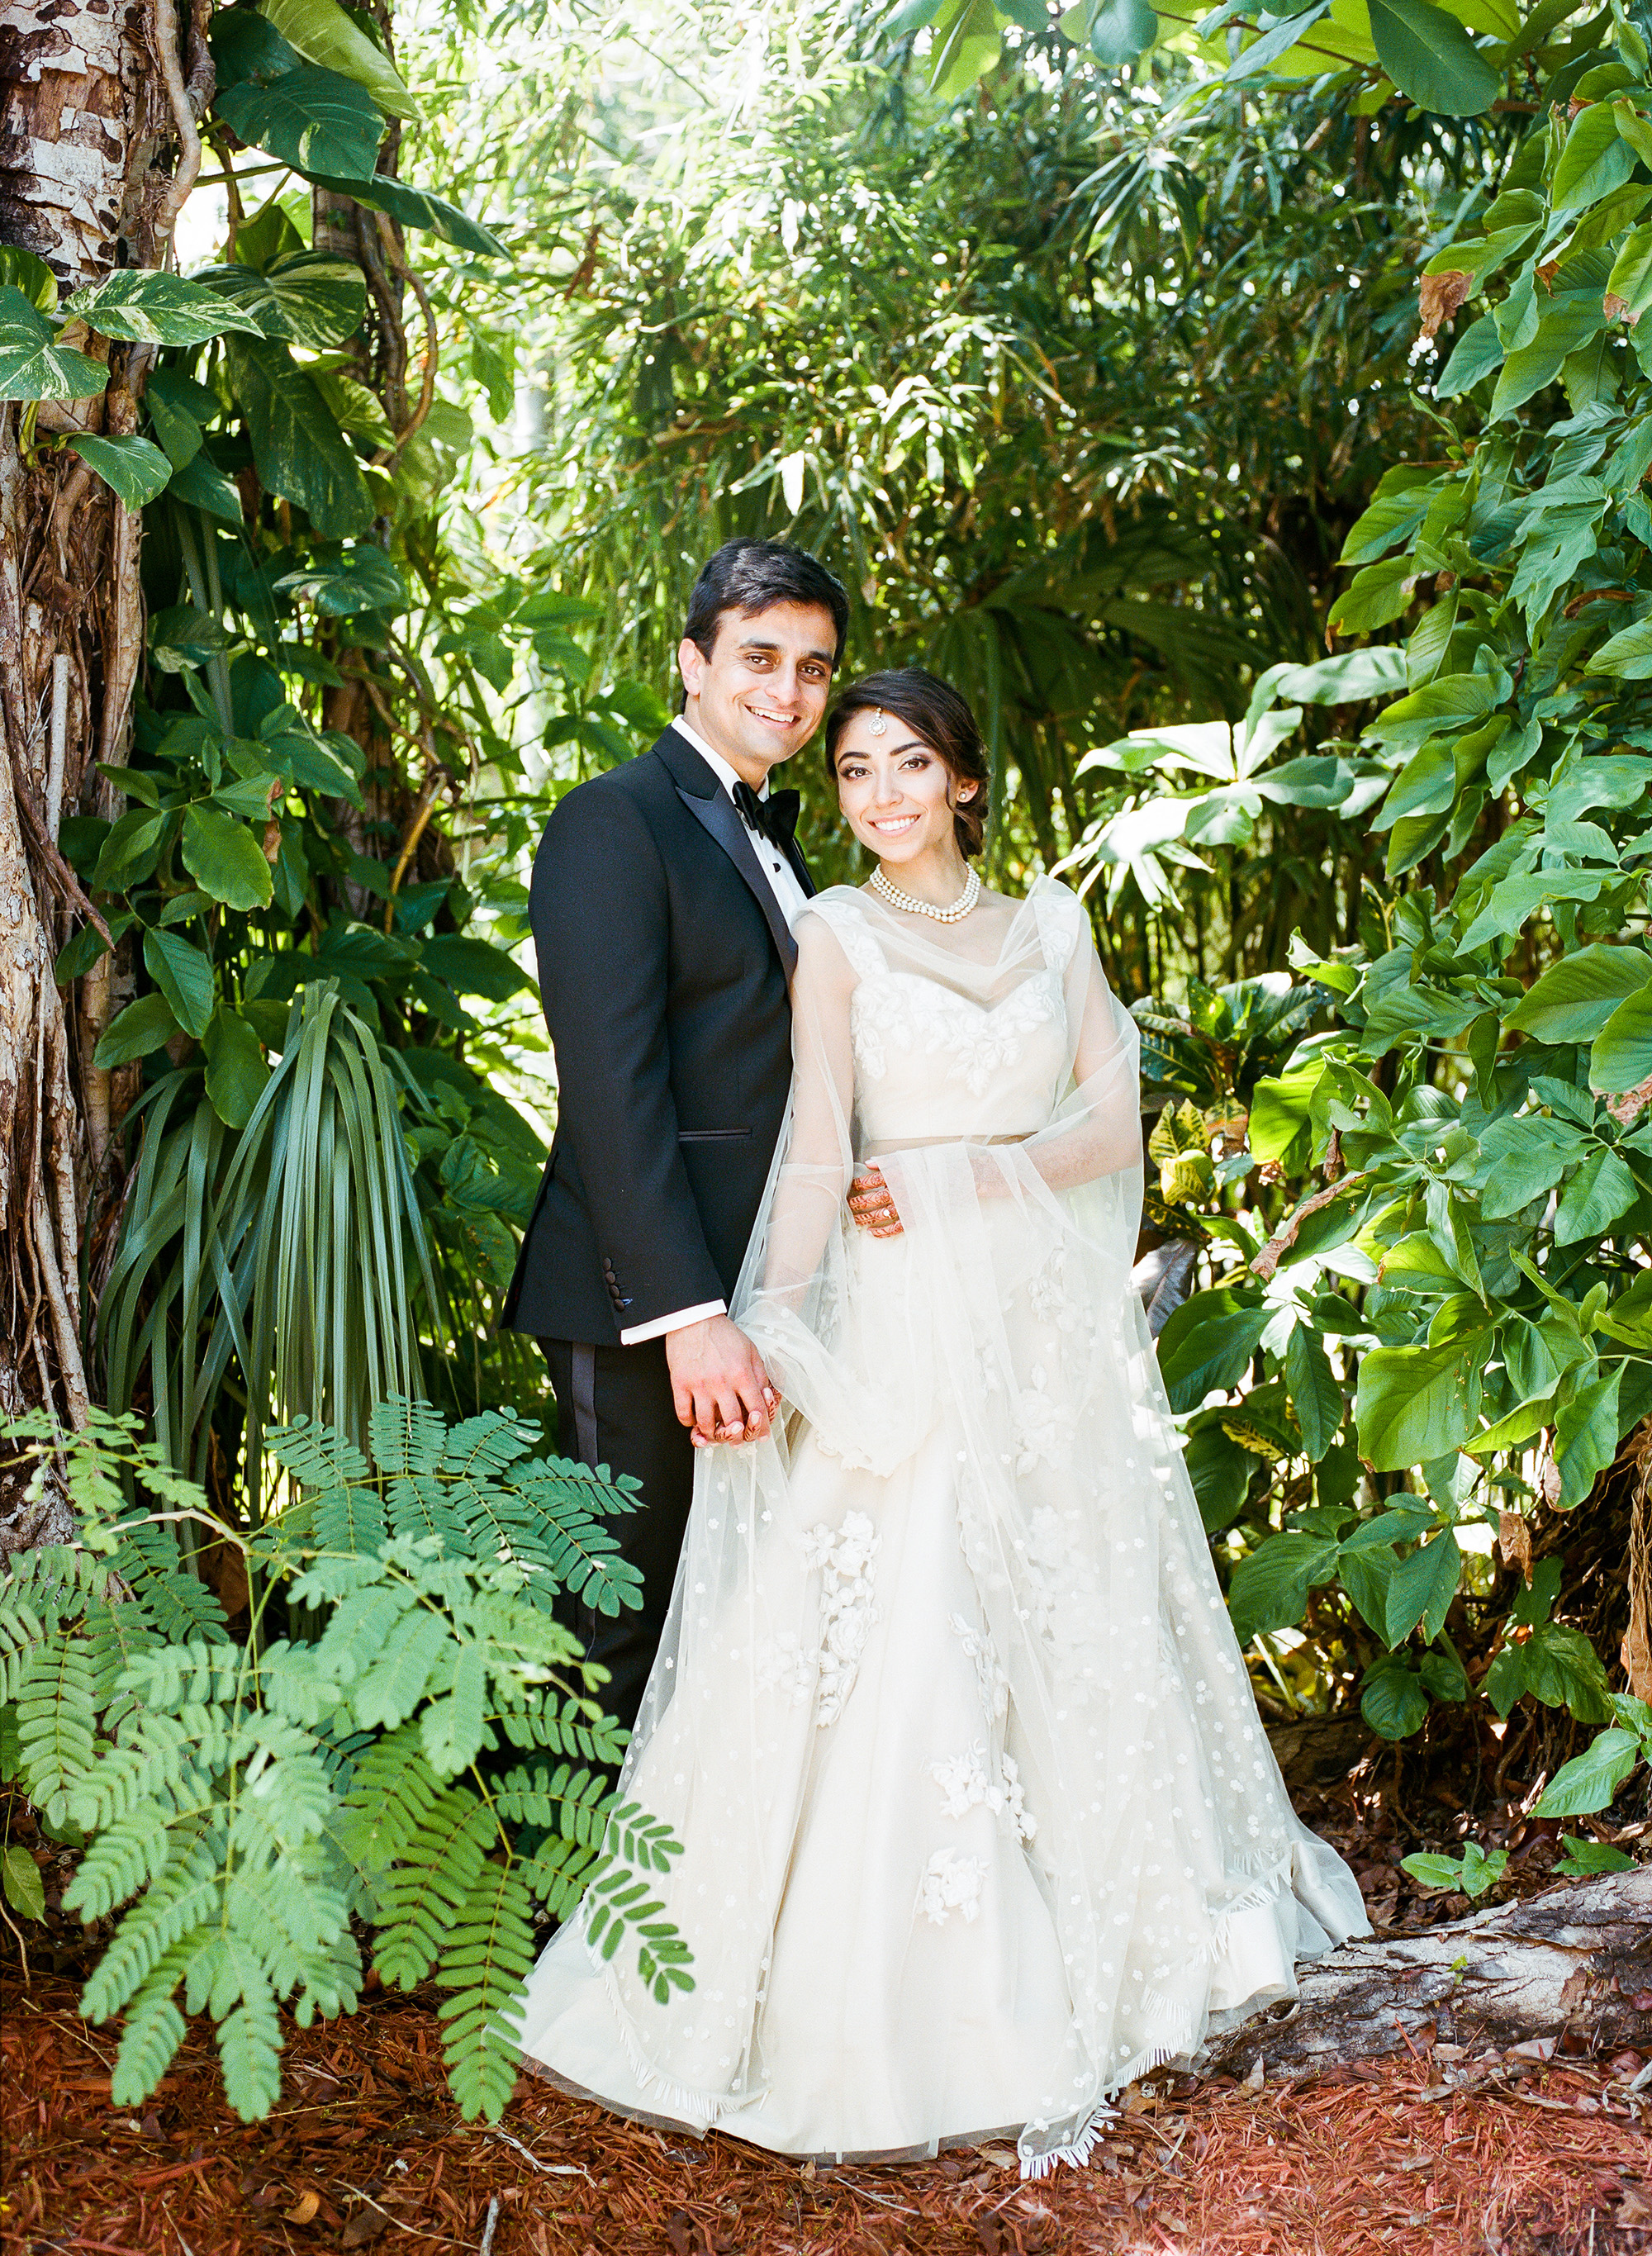 anuja nikhil wedding ceremony couple bride white dress